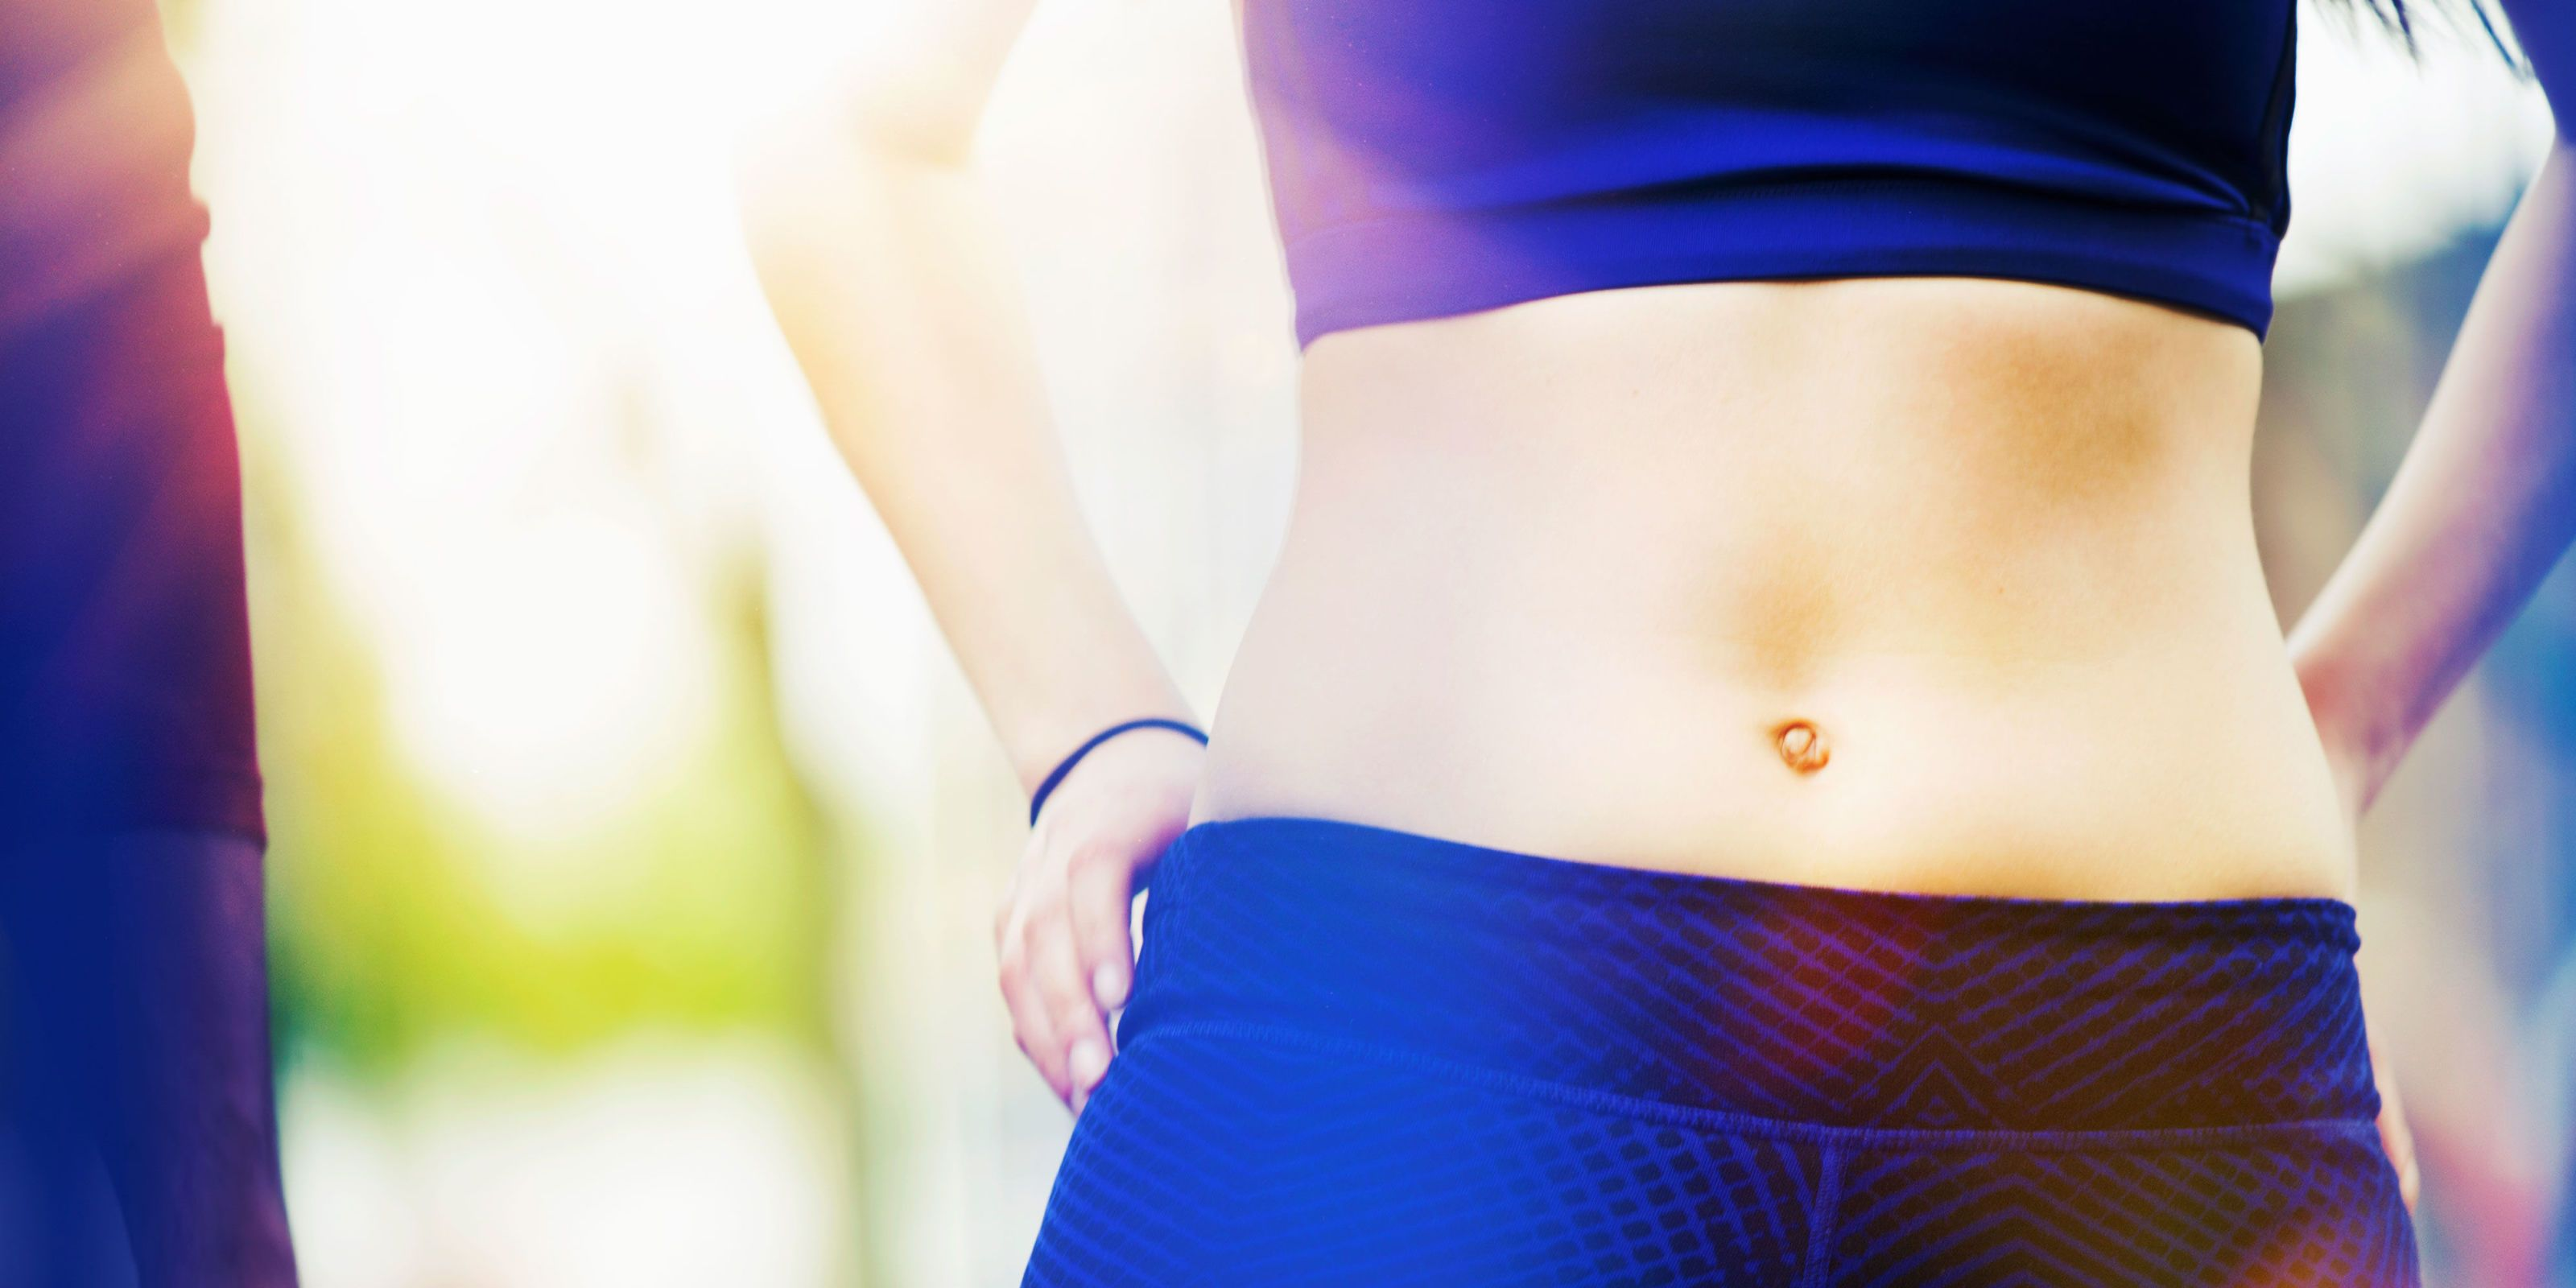 How to burn fat from your lower stomach